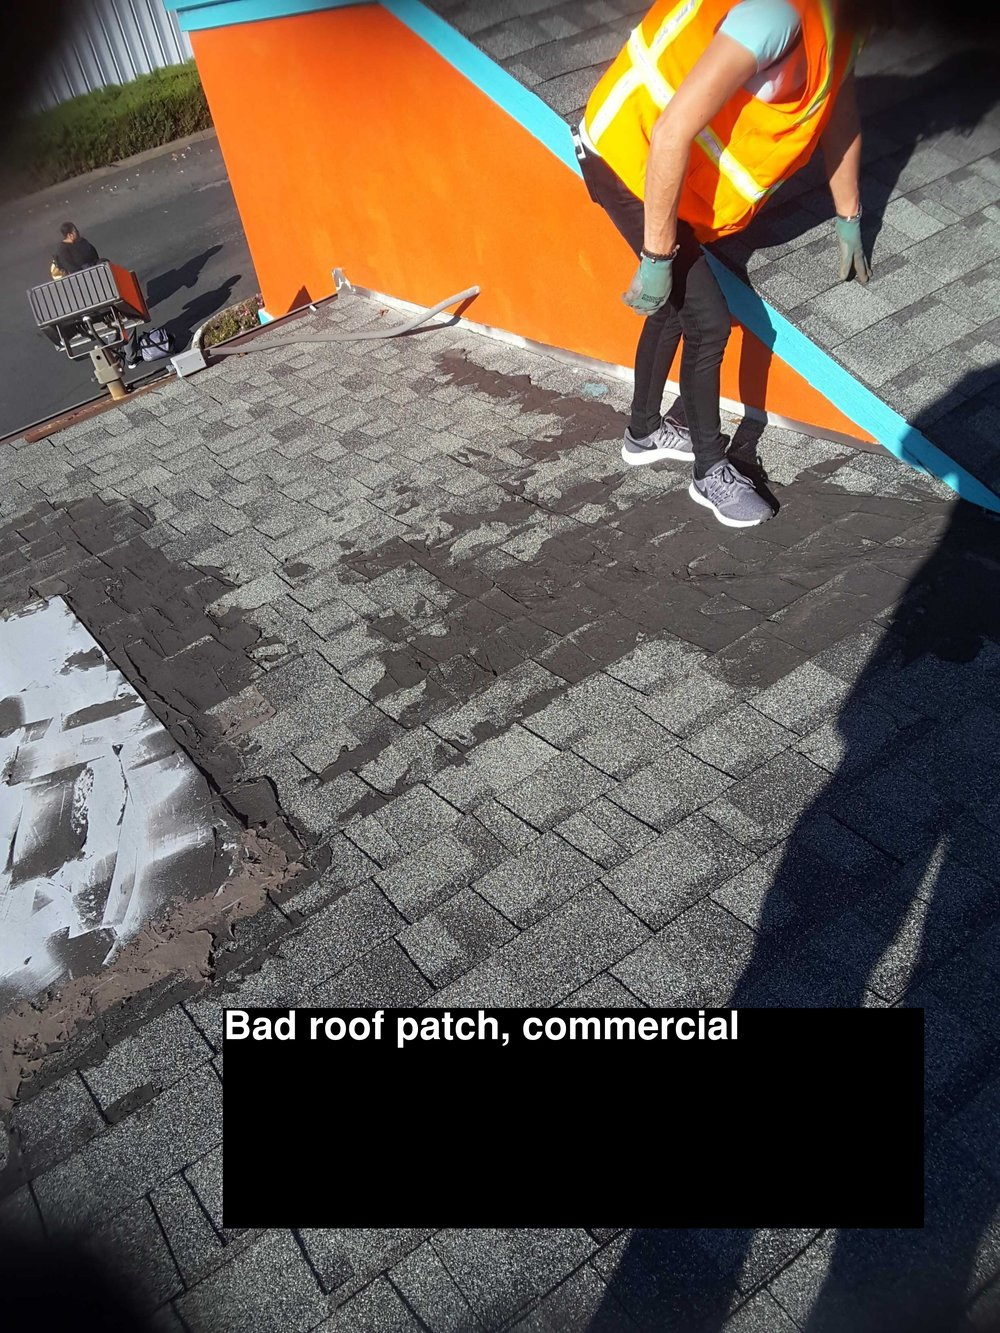 Commercial bad roof patch.jpg